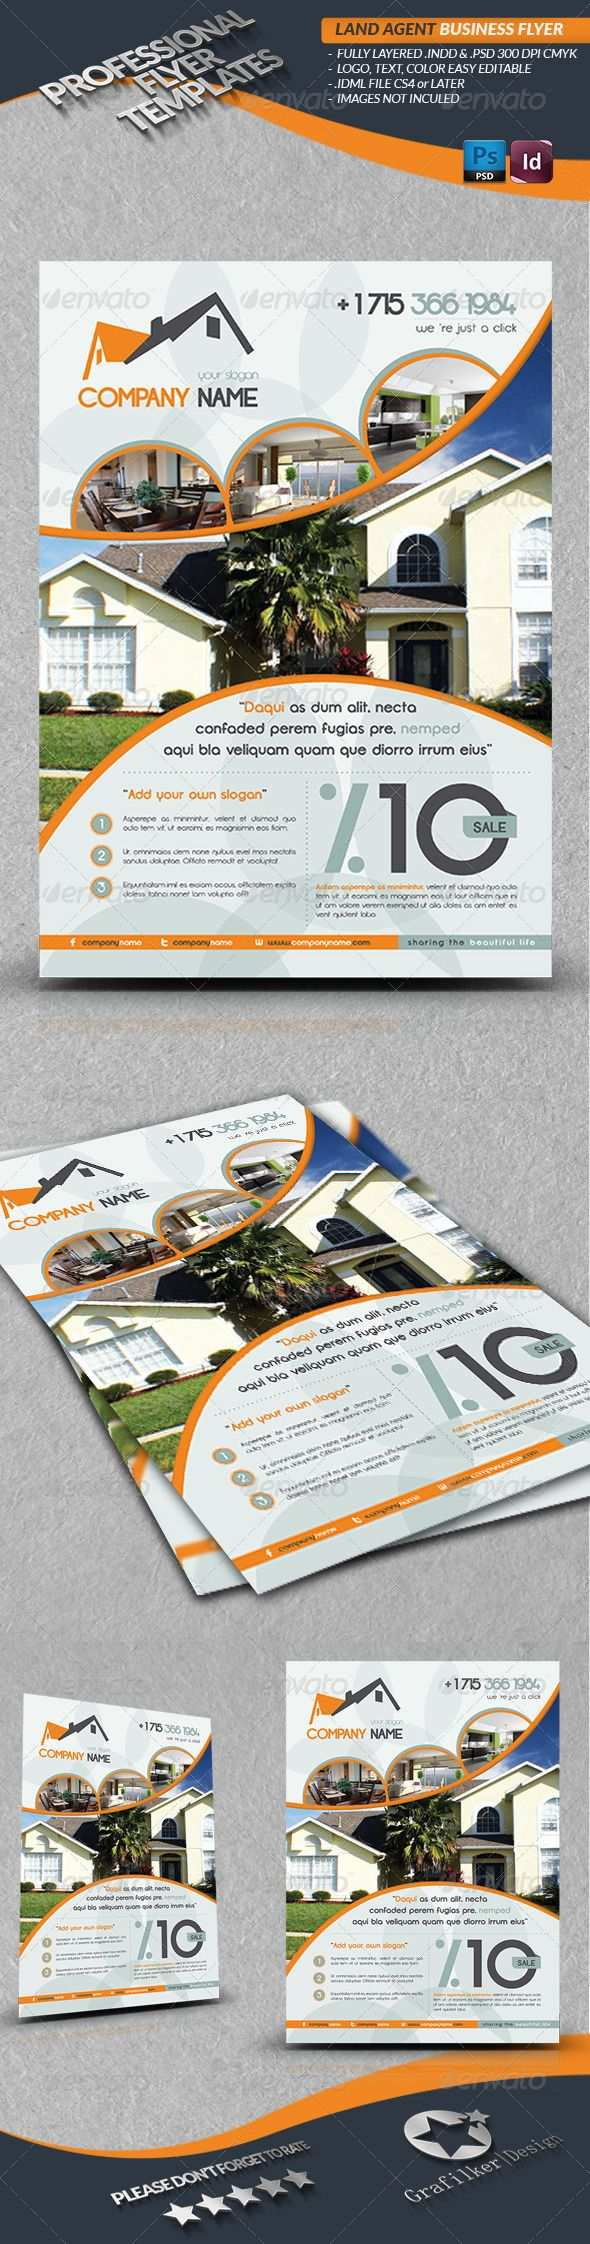 Land Agent Business Flyer Corporate Flyer Template Psd Indesign